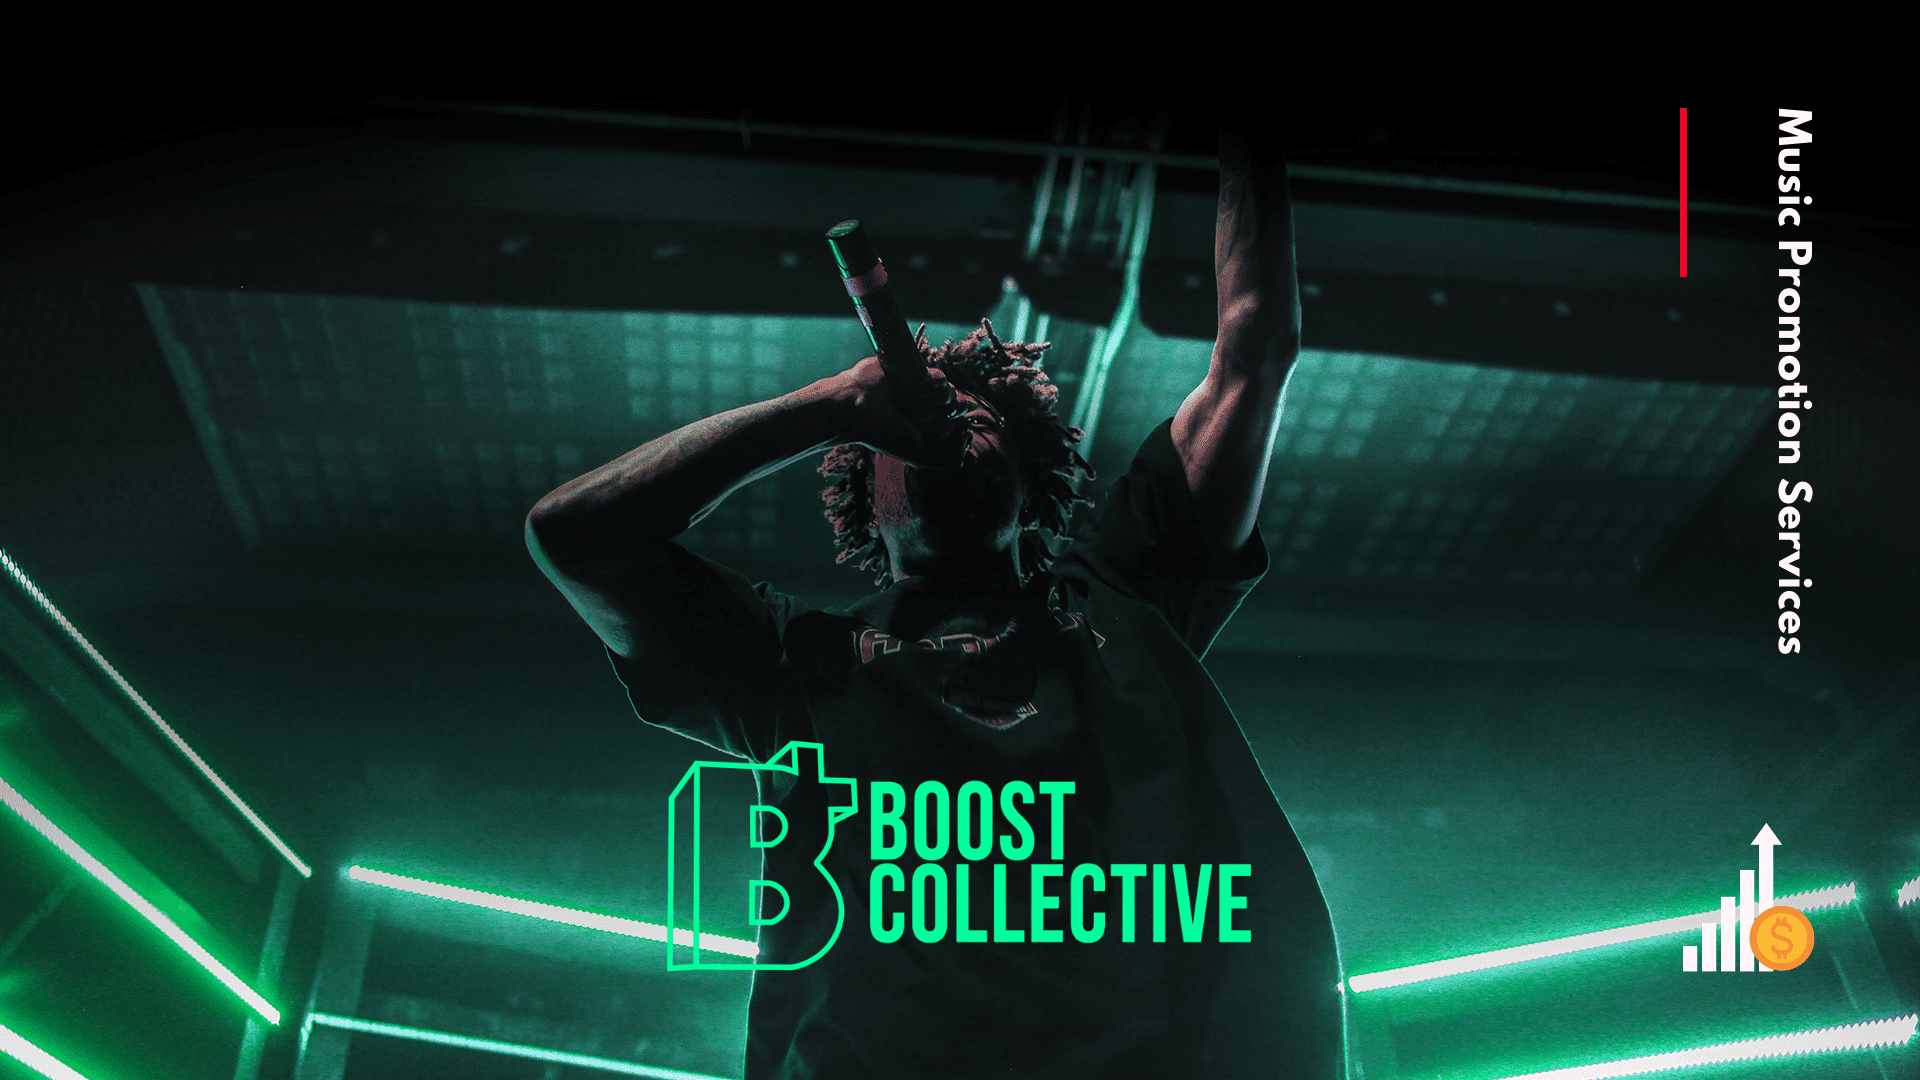 boost collective music promotion services